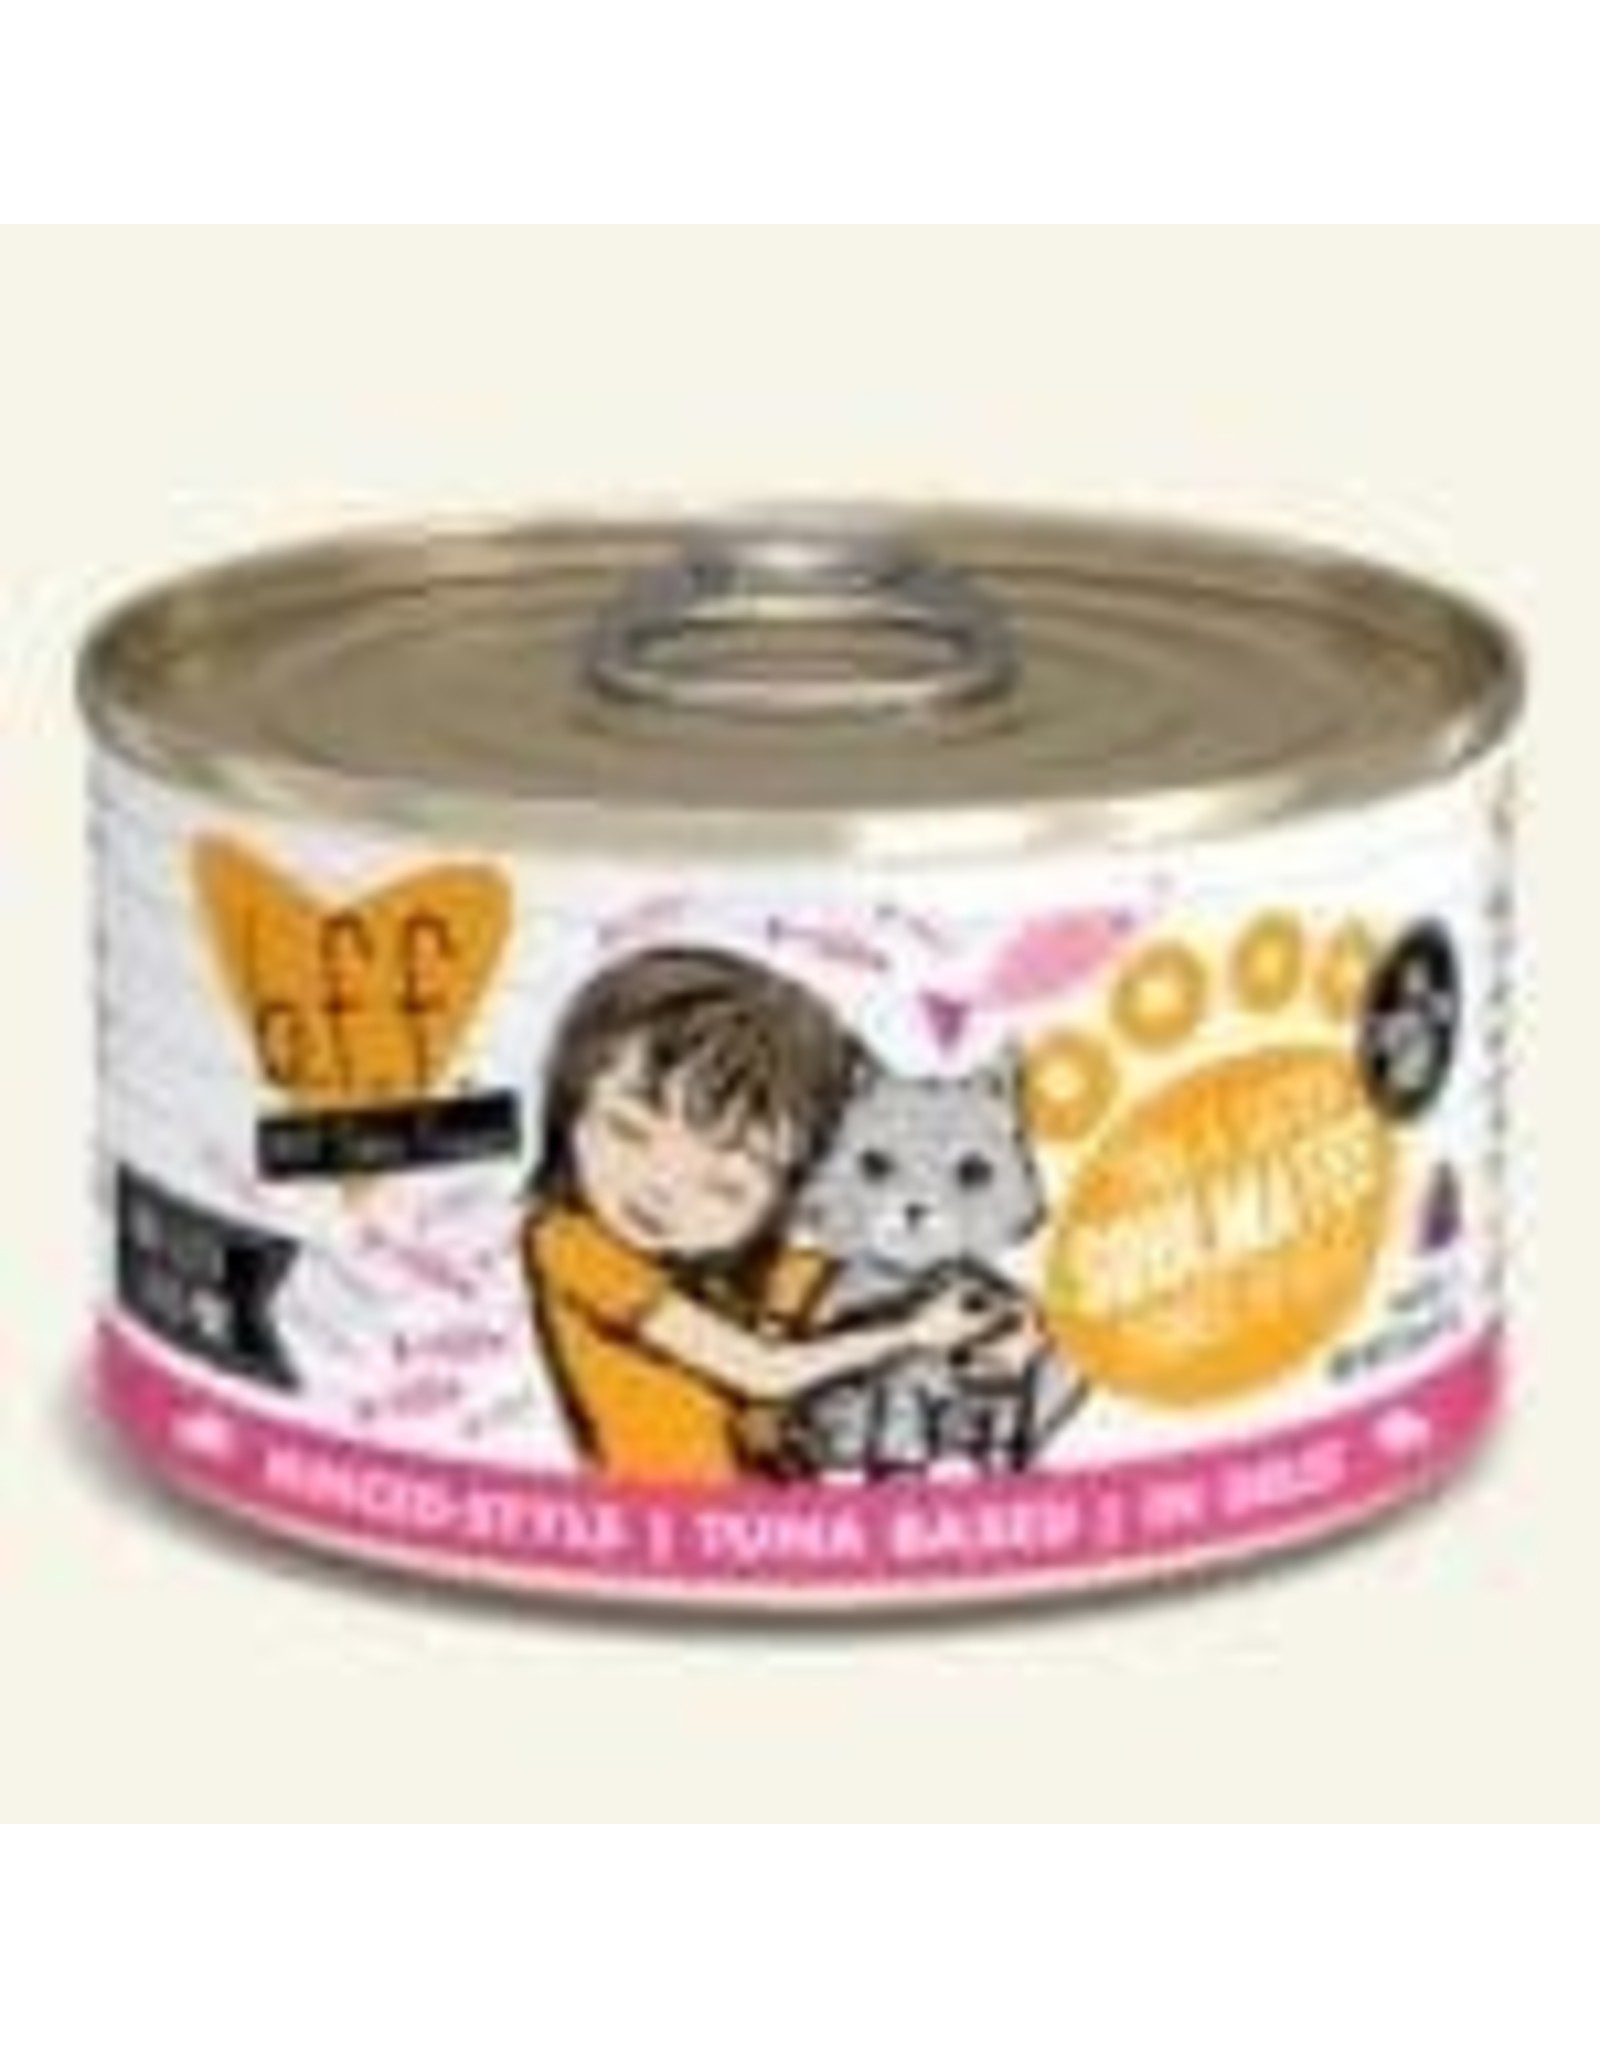 BFF BFF Can 3oz Tuna & Salmon Soulmates